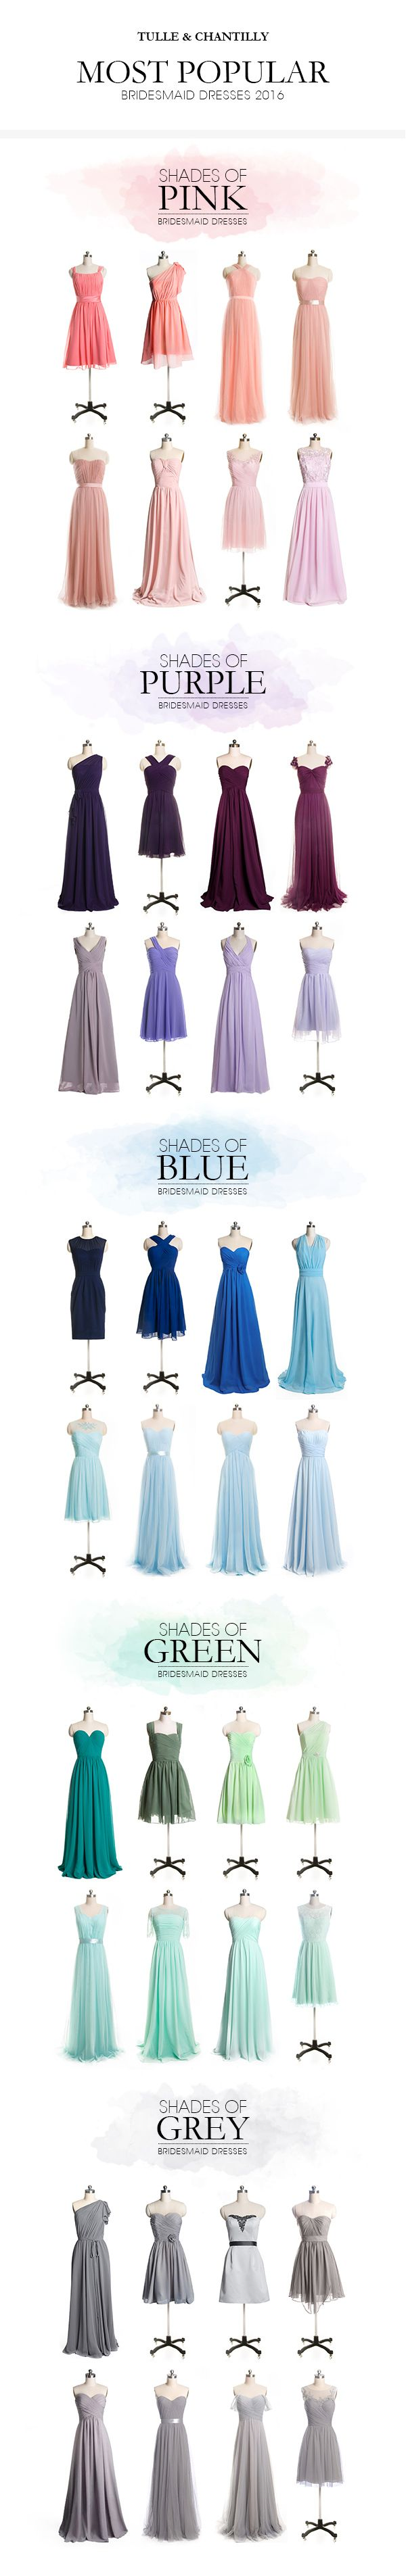 "Tulle & Chantilly hottest bridesmaid dresses 2016 in shades of pink, purple, blue, green and grey---USE CODE ""pin15"" TO GET 15% OFF"